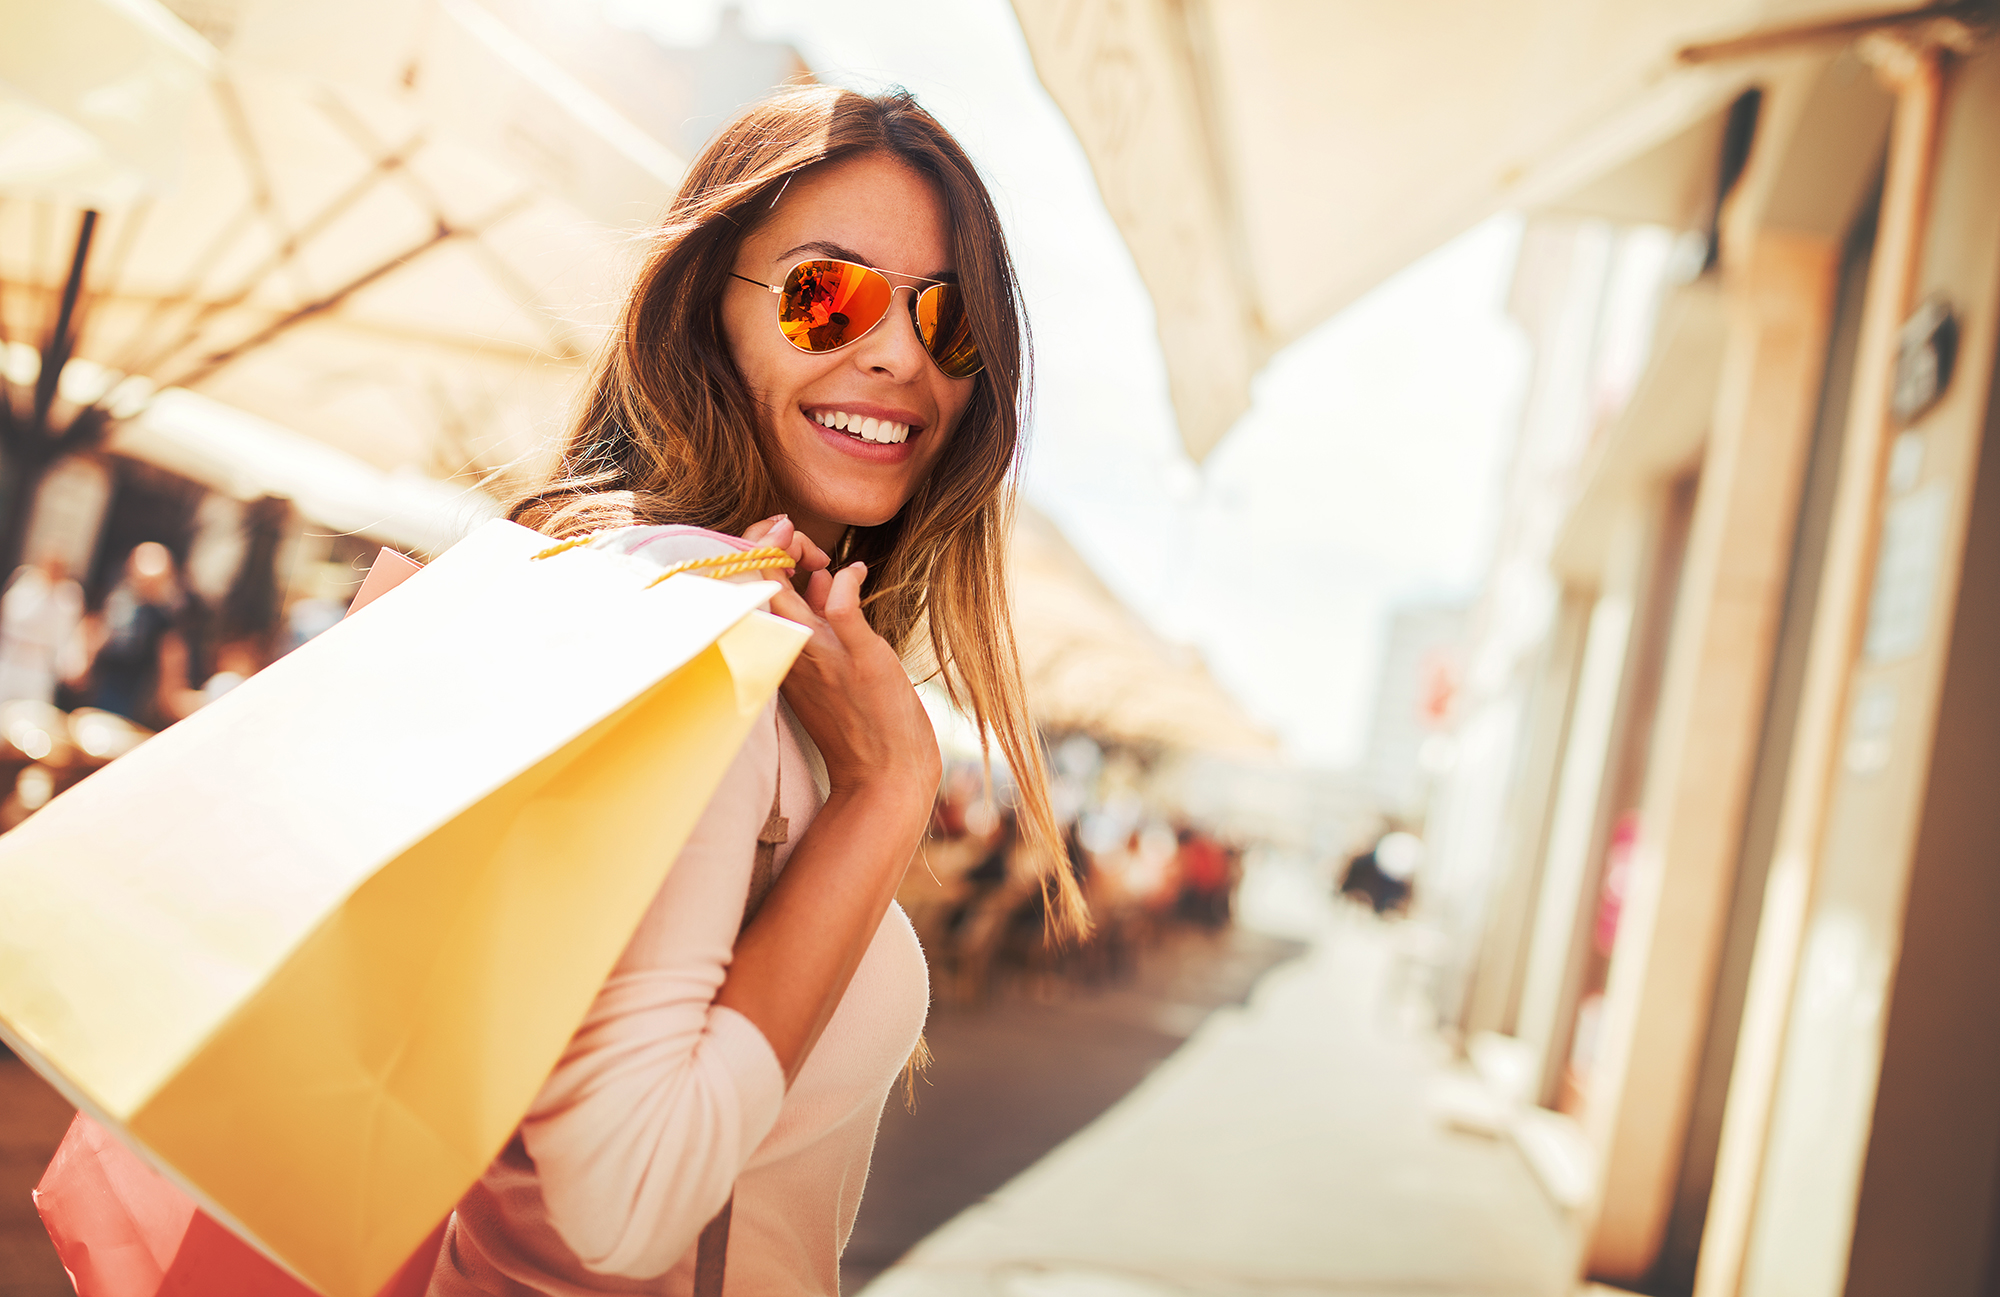 Woman shopping. (Image: Shutterstock)